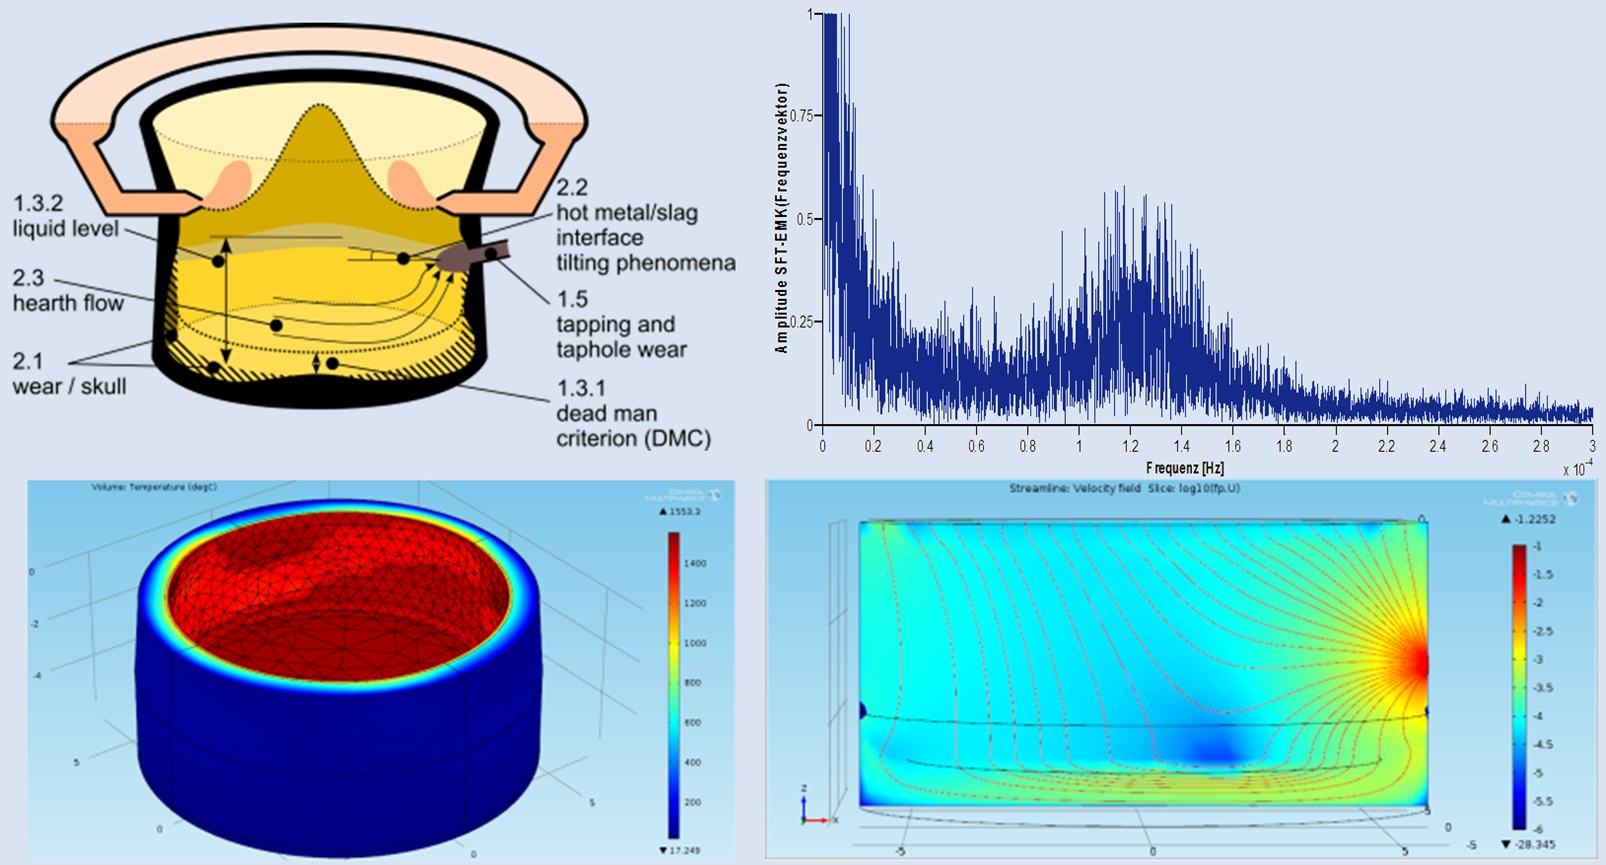 Modeling of liquid levels, dead man state, flow and refractory wear at the blast furnace